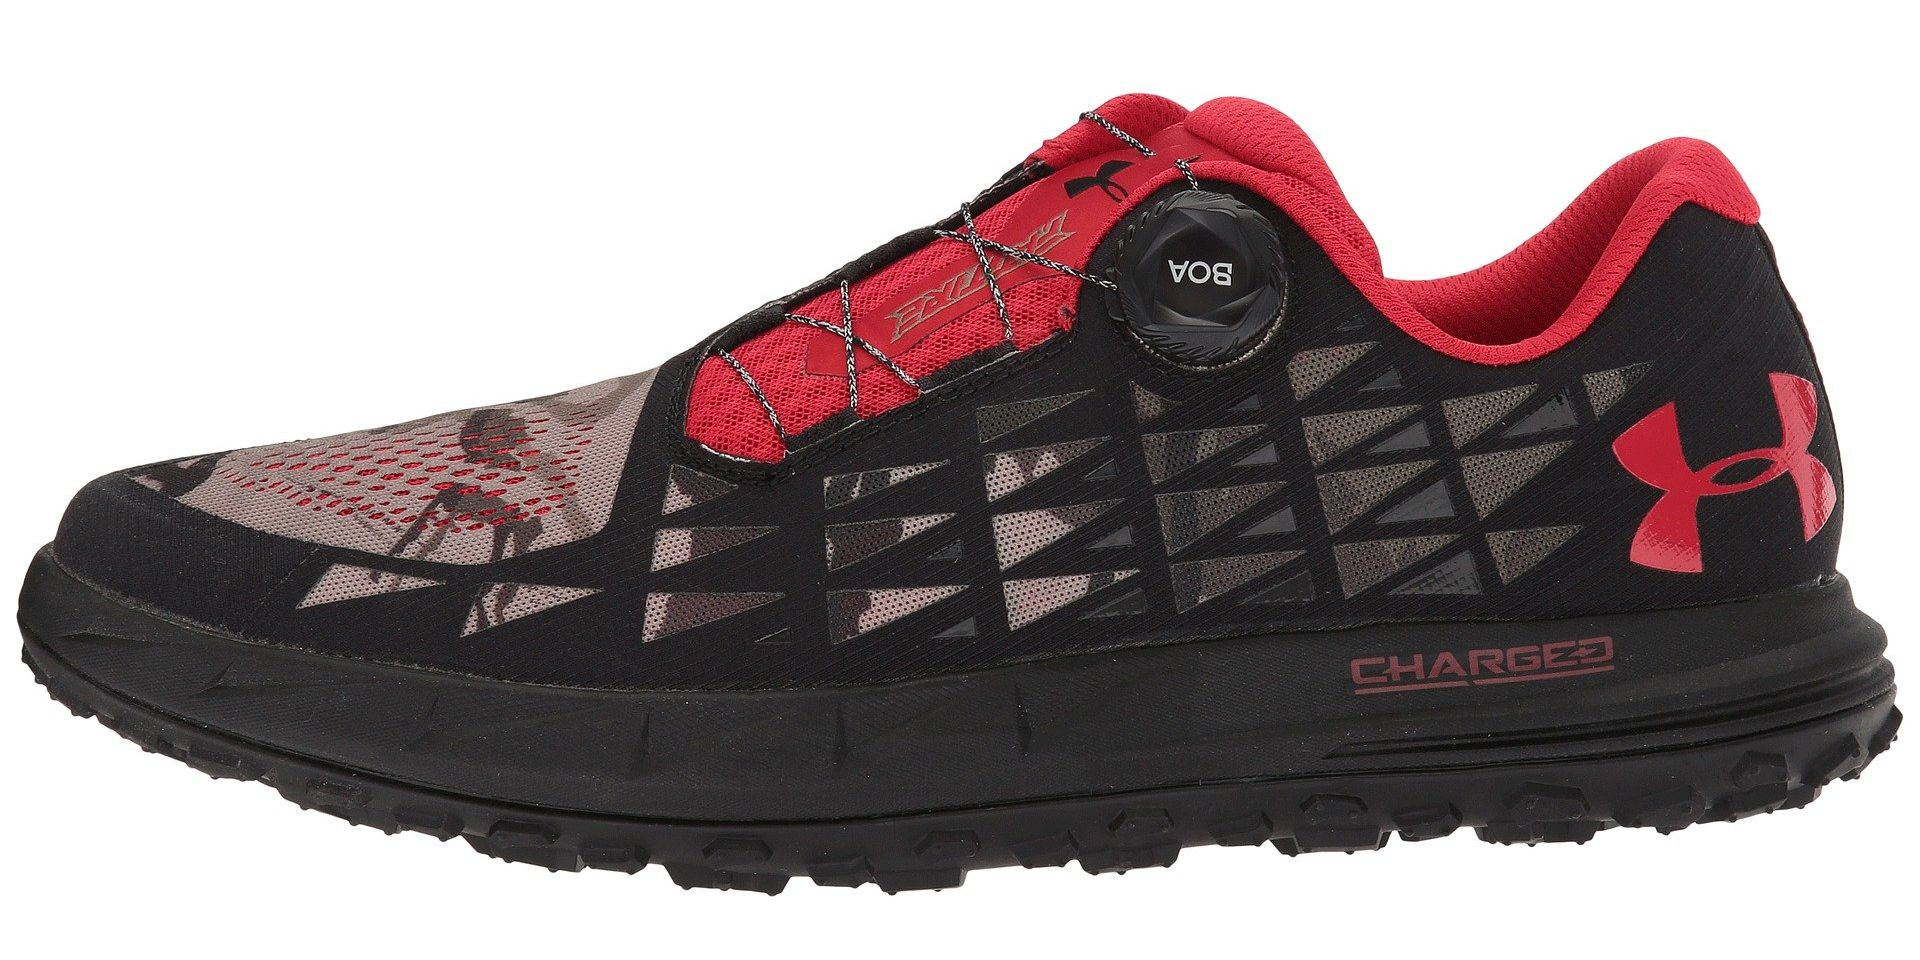 outlet store da10a f67c5 Courtesy of Under Armour